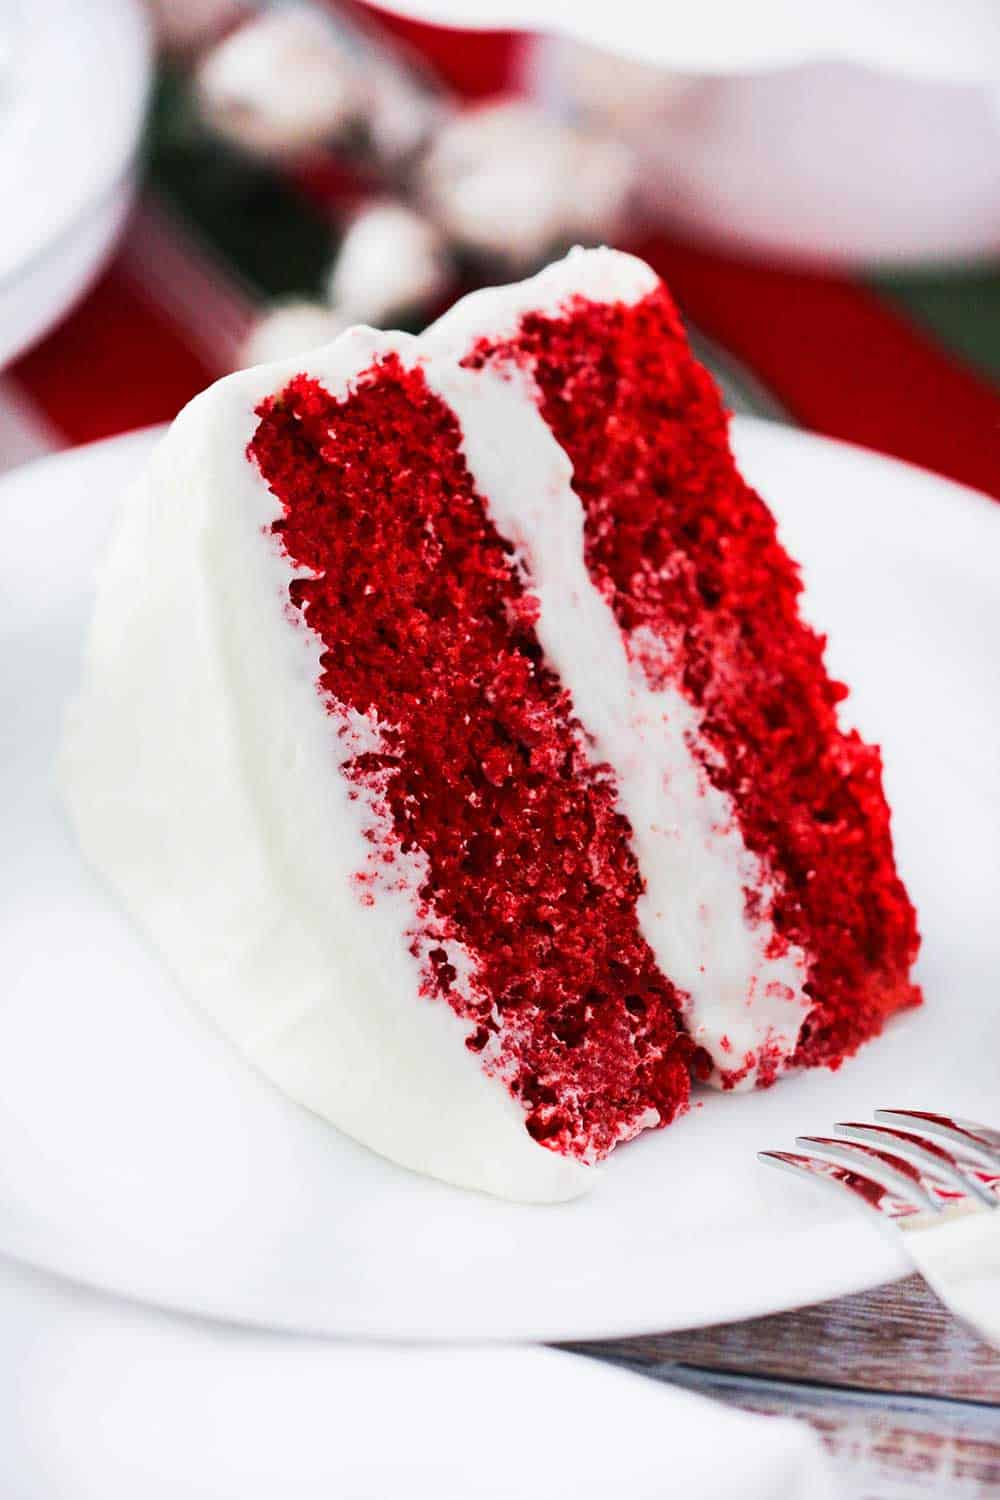 A large slice of red velvet cake on a white plate.